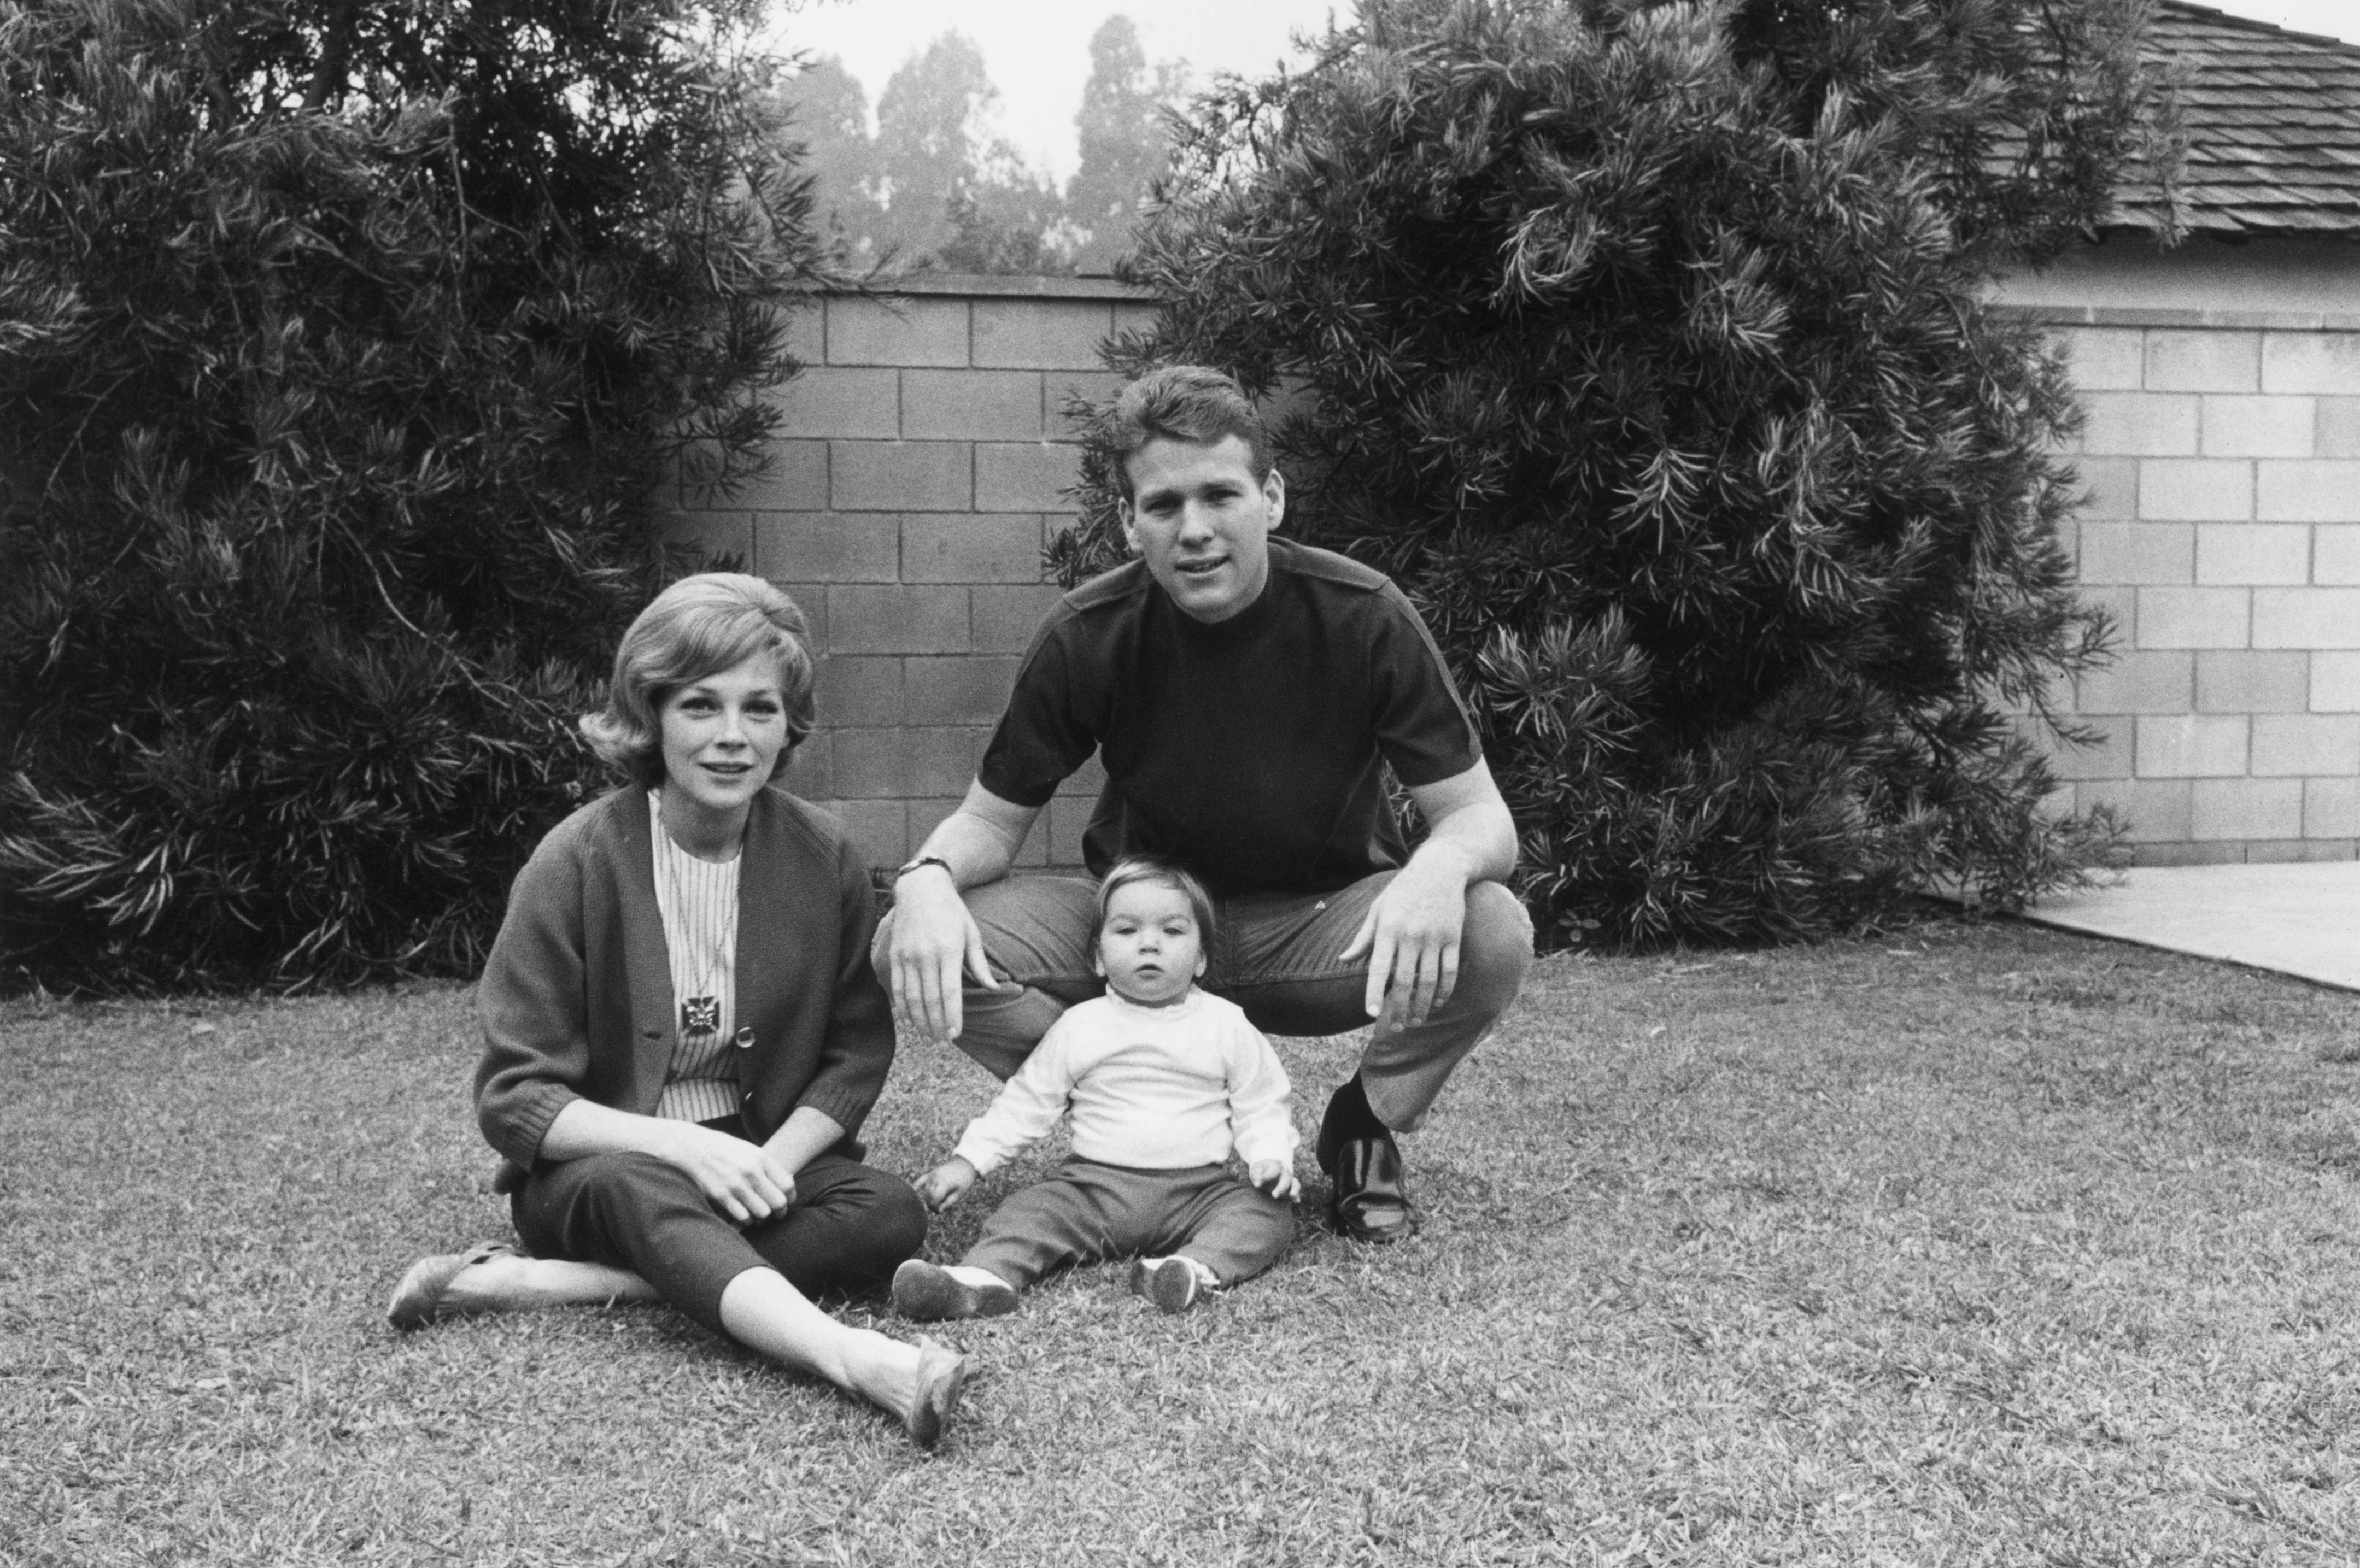 Ryan O'Neal with his wife, actor Joanna Moore, and daughter, Tatum, sitting on grass in front of a stone wall   Photo: Getty Images